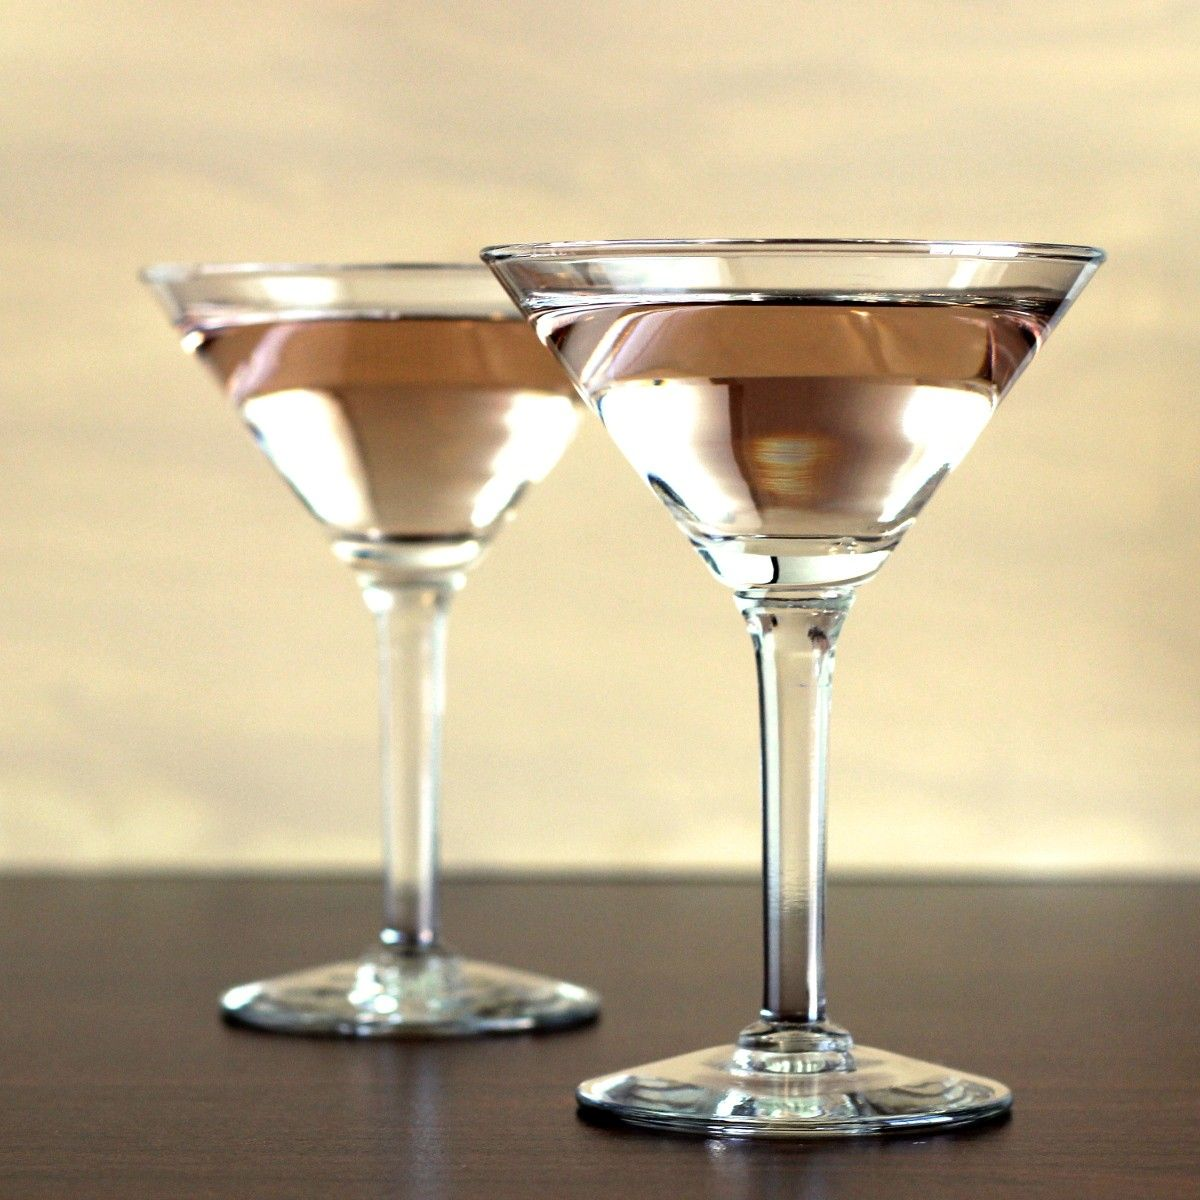 The Currant Vodka Martini